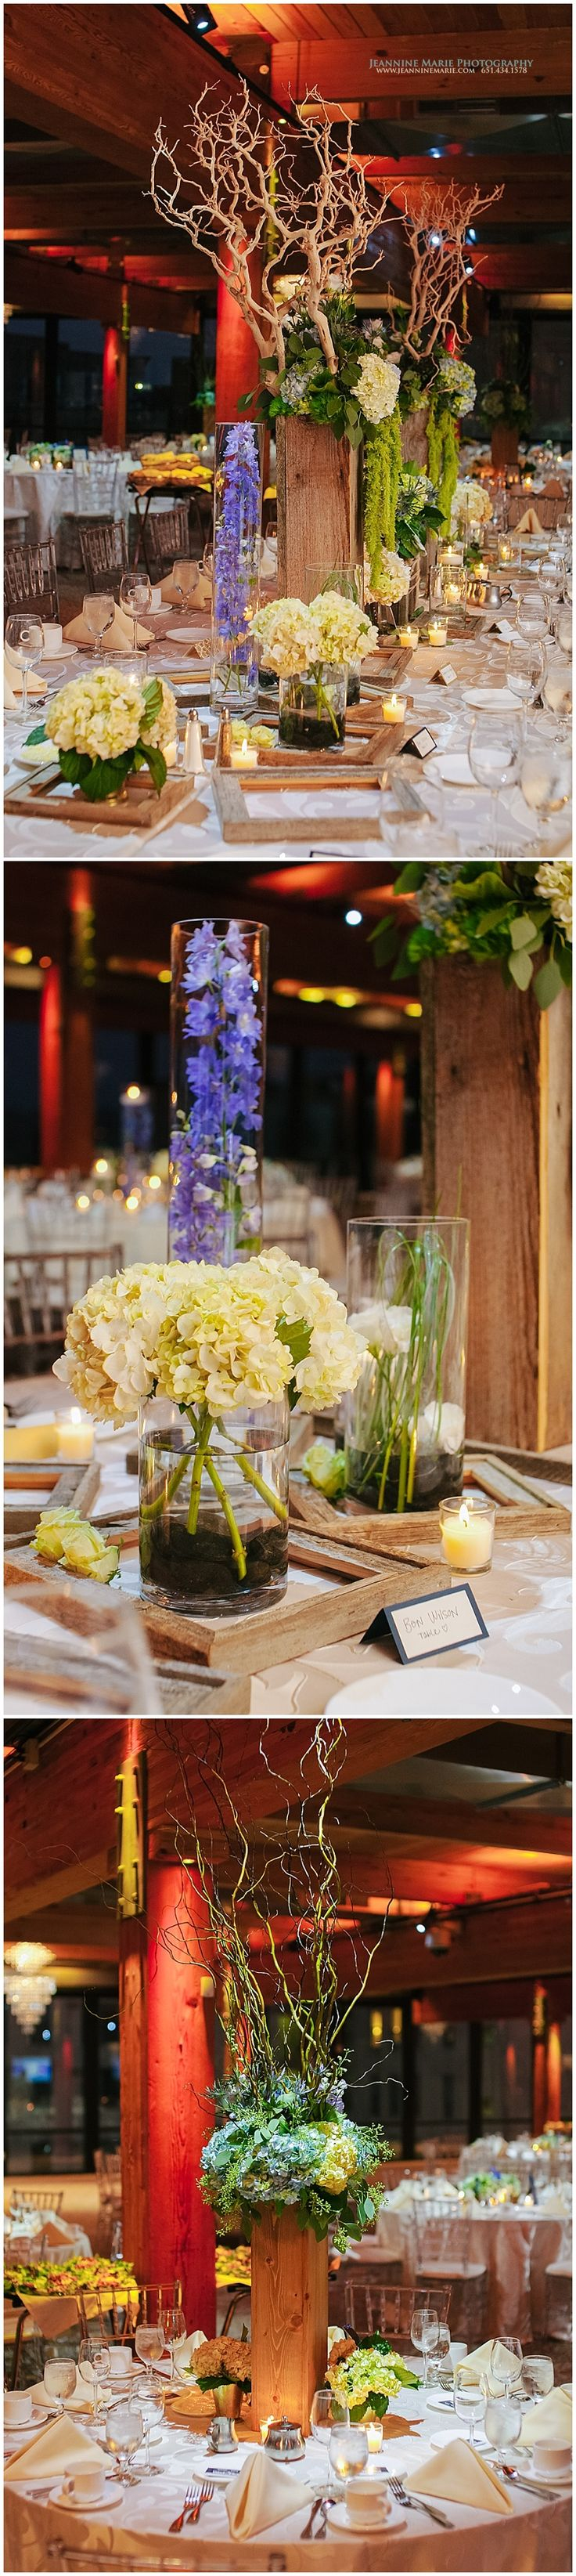 affordable wedding reception venues minnesota%0A Wedding reception guest table centerpieces at A u    BULAE in Saint Paul  MN  photographed by